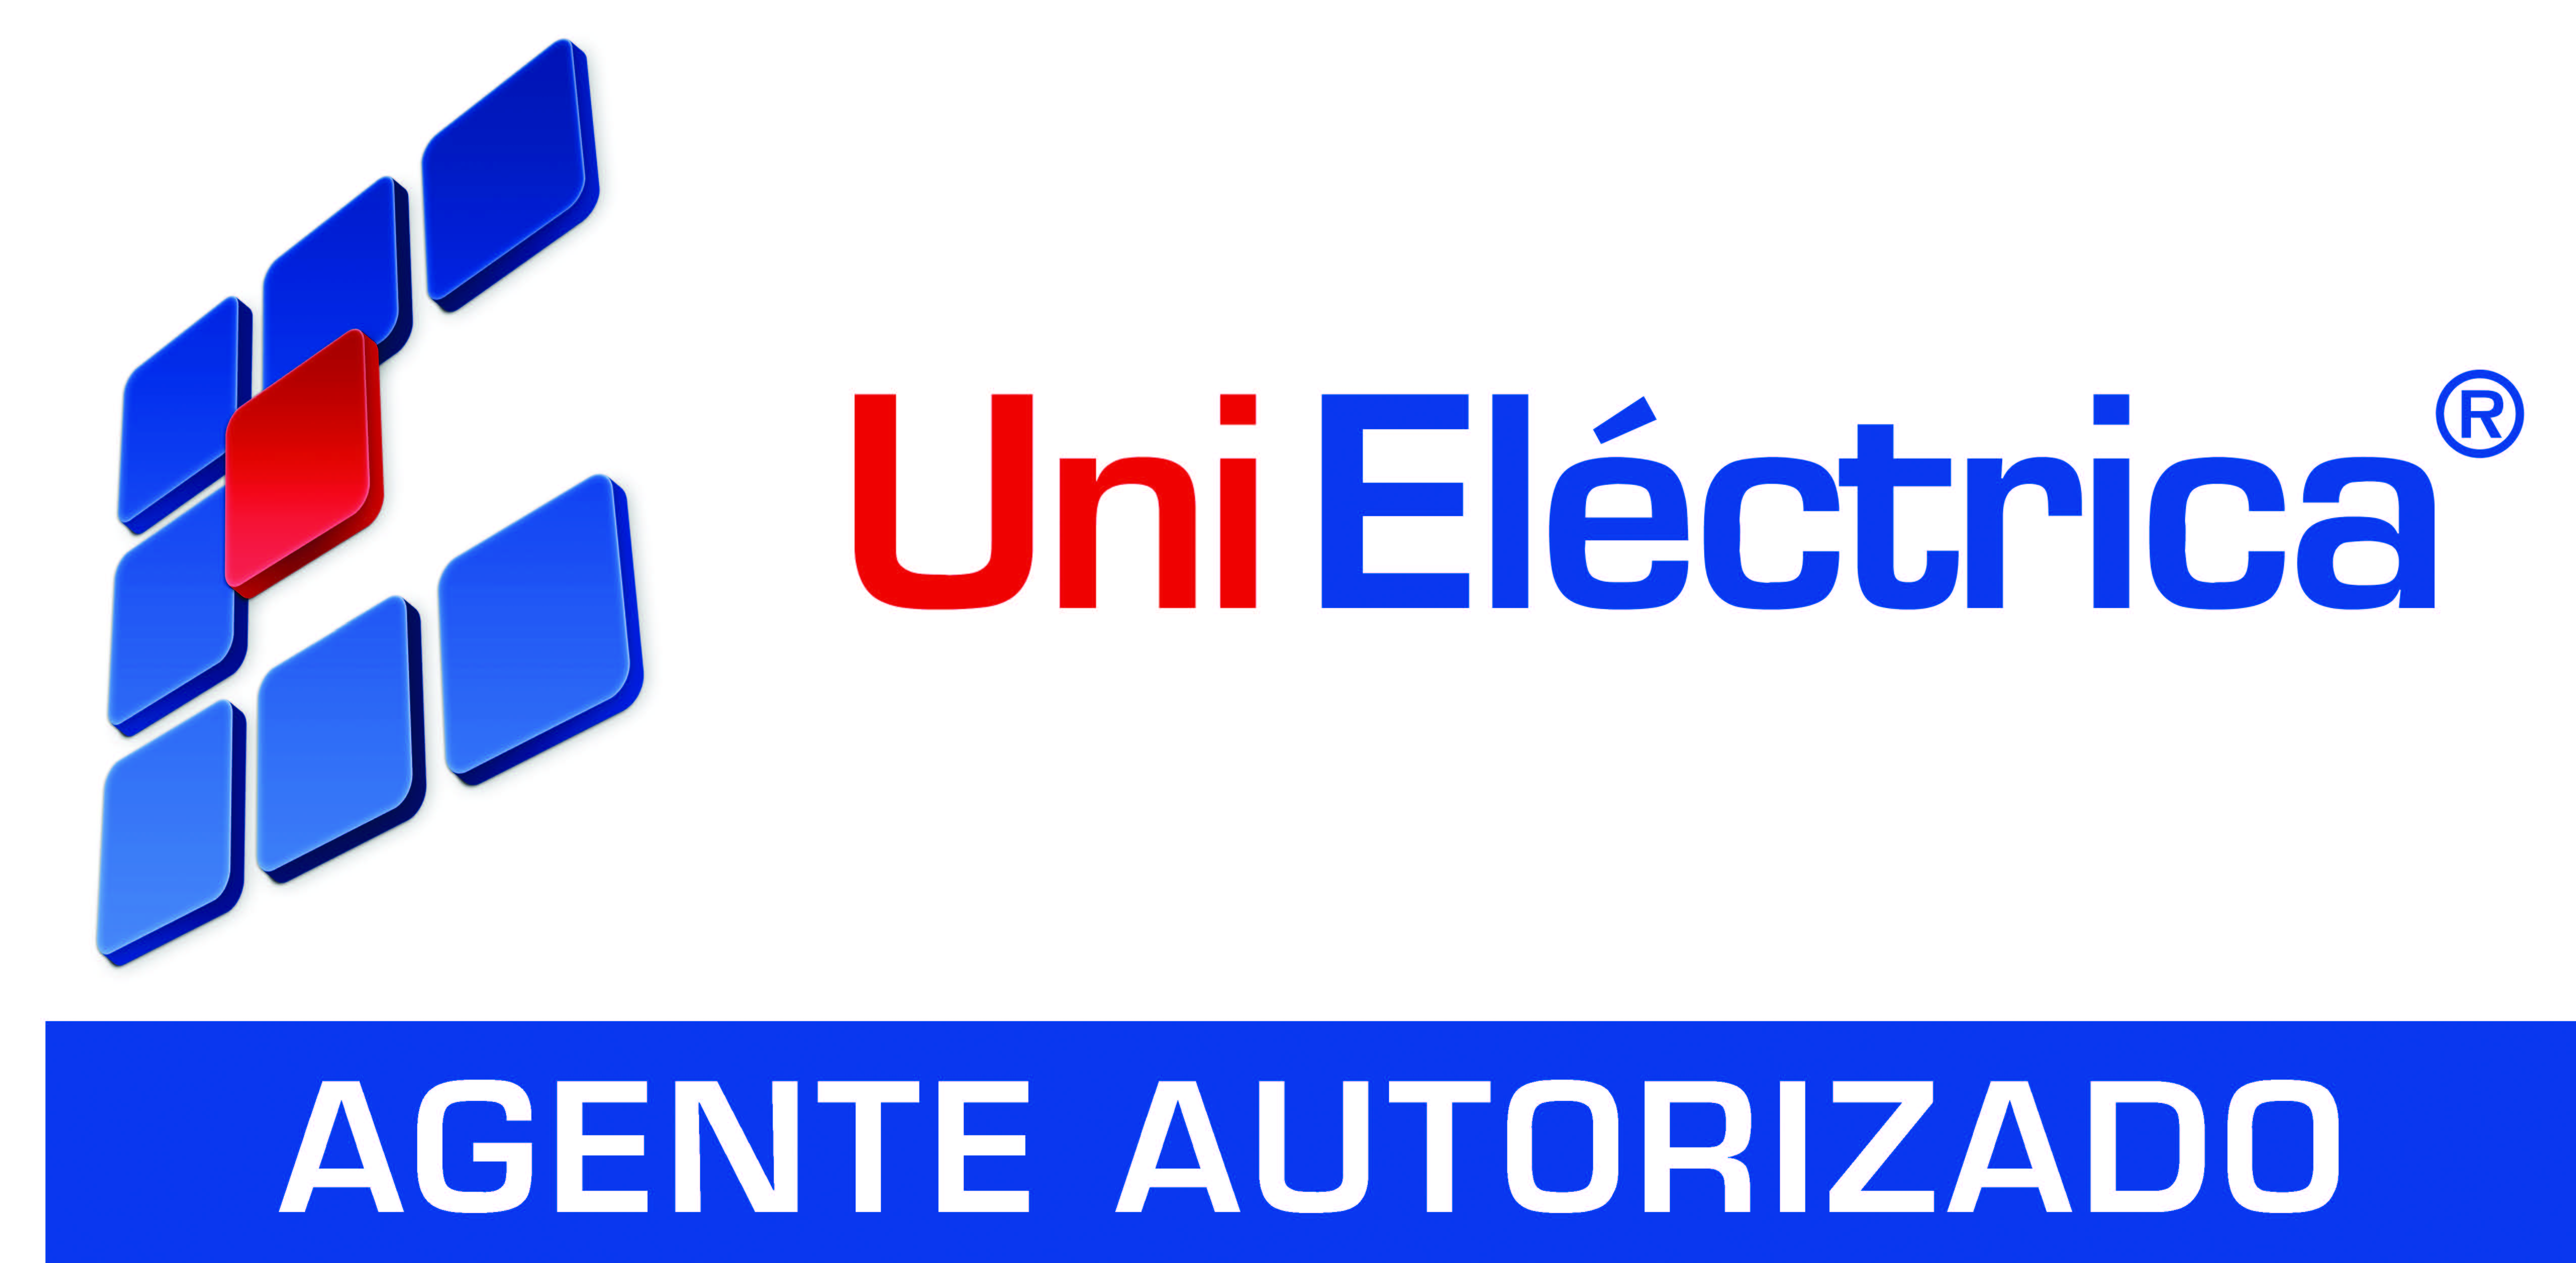 Unielectrica